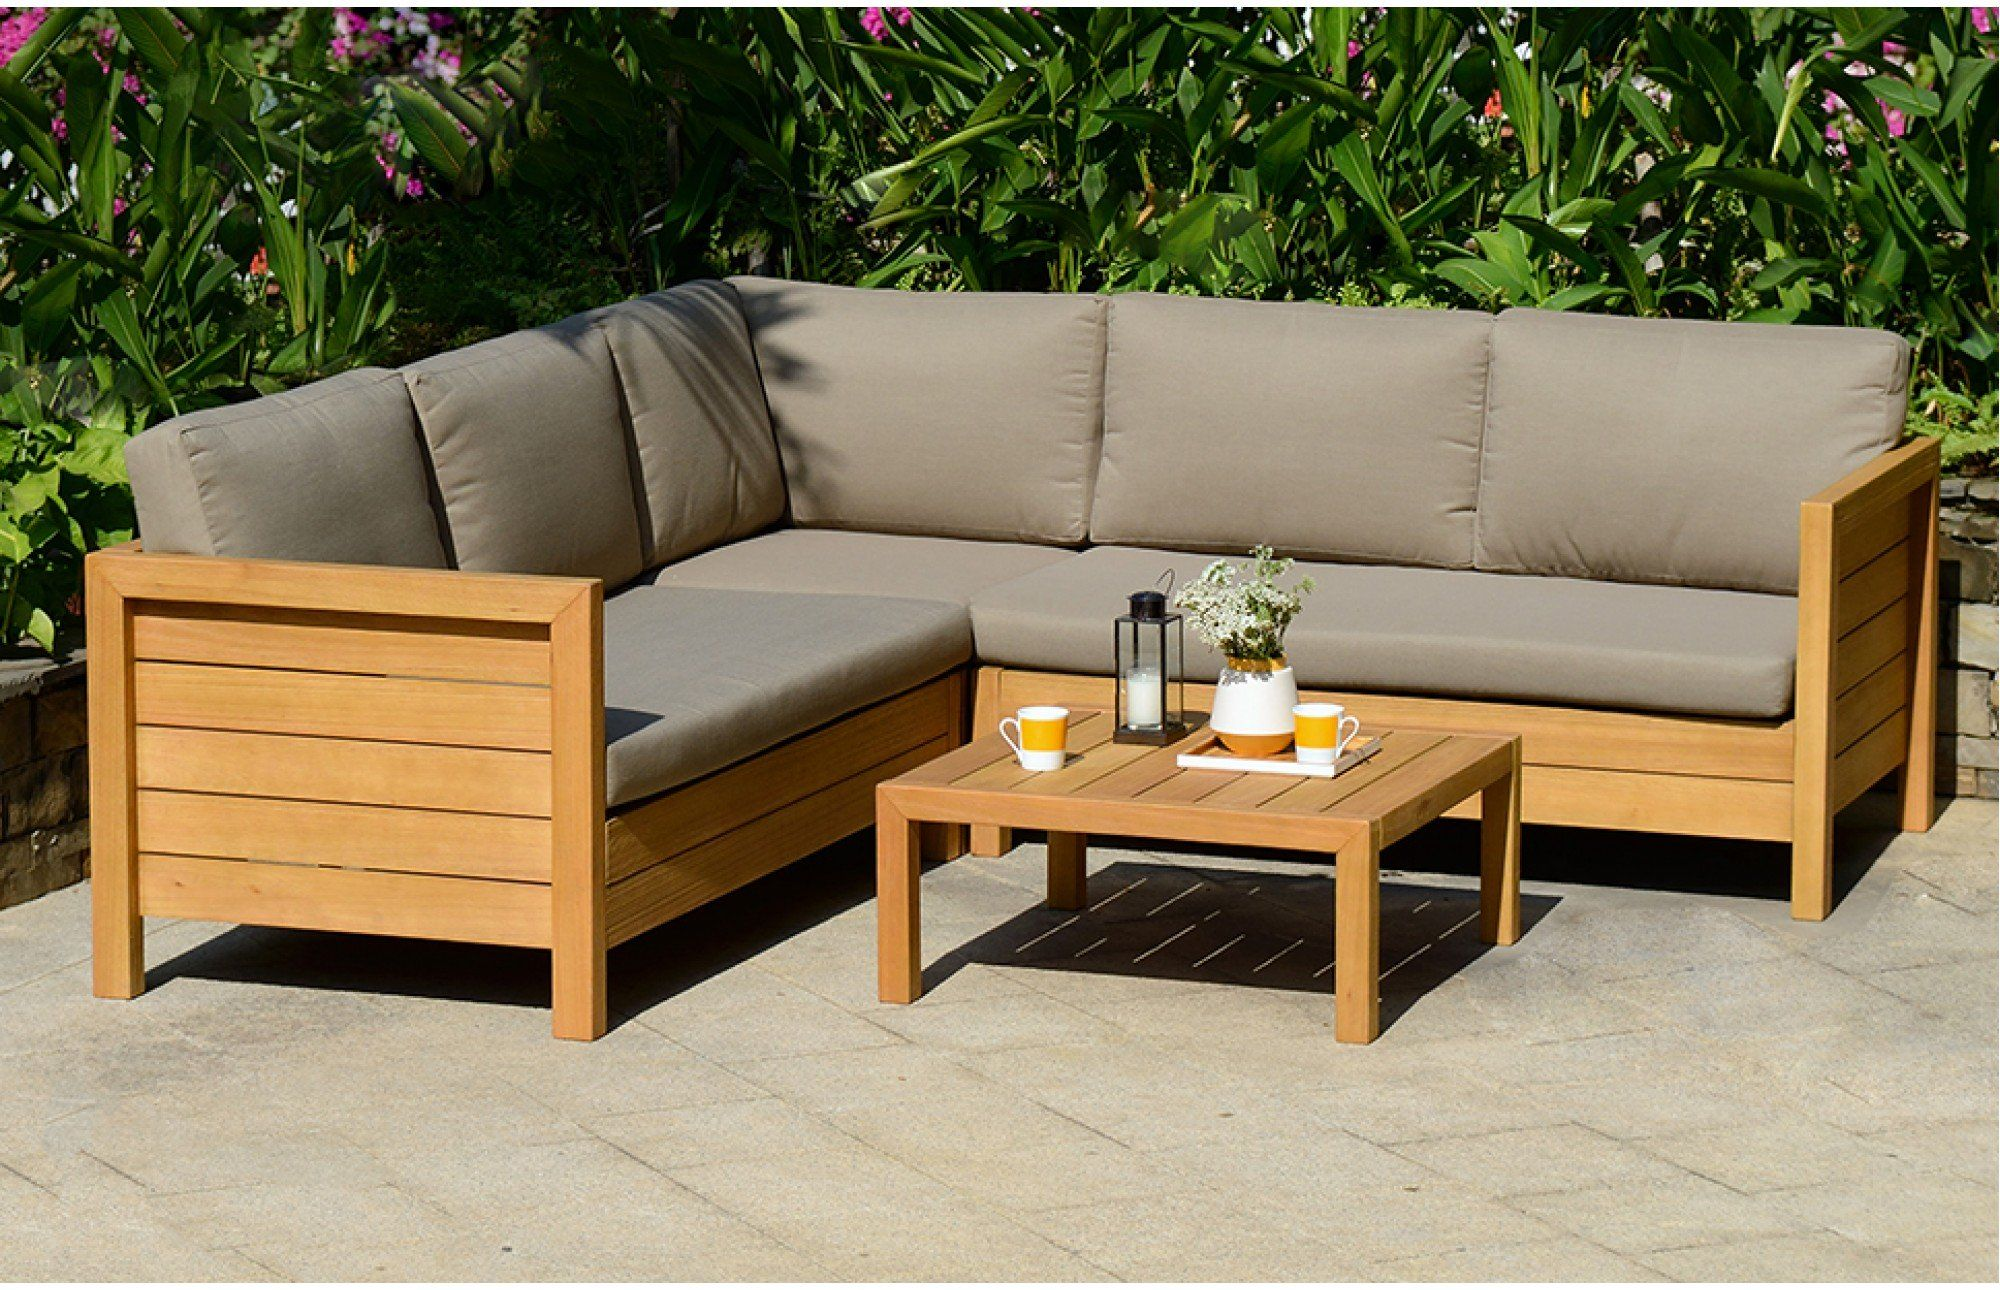 This Lodge garden set comes in a beautiful teak look finish giving ...